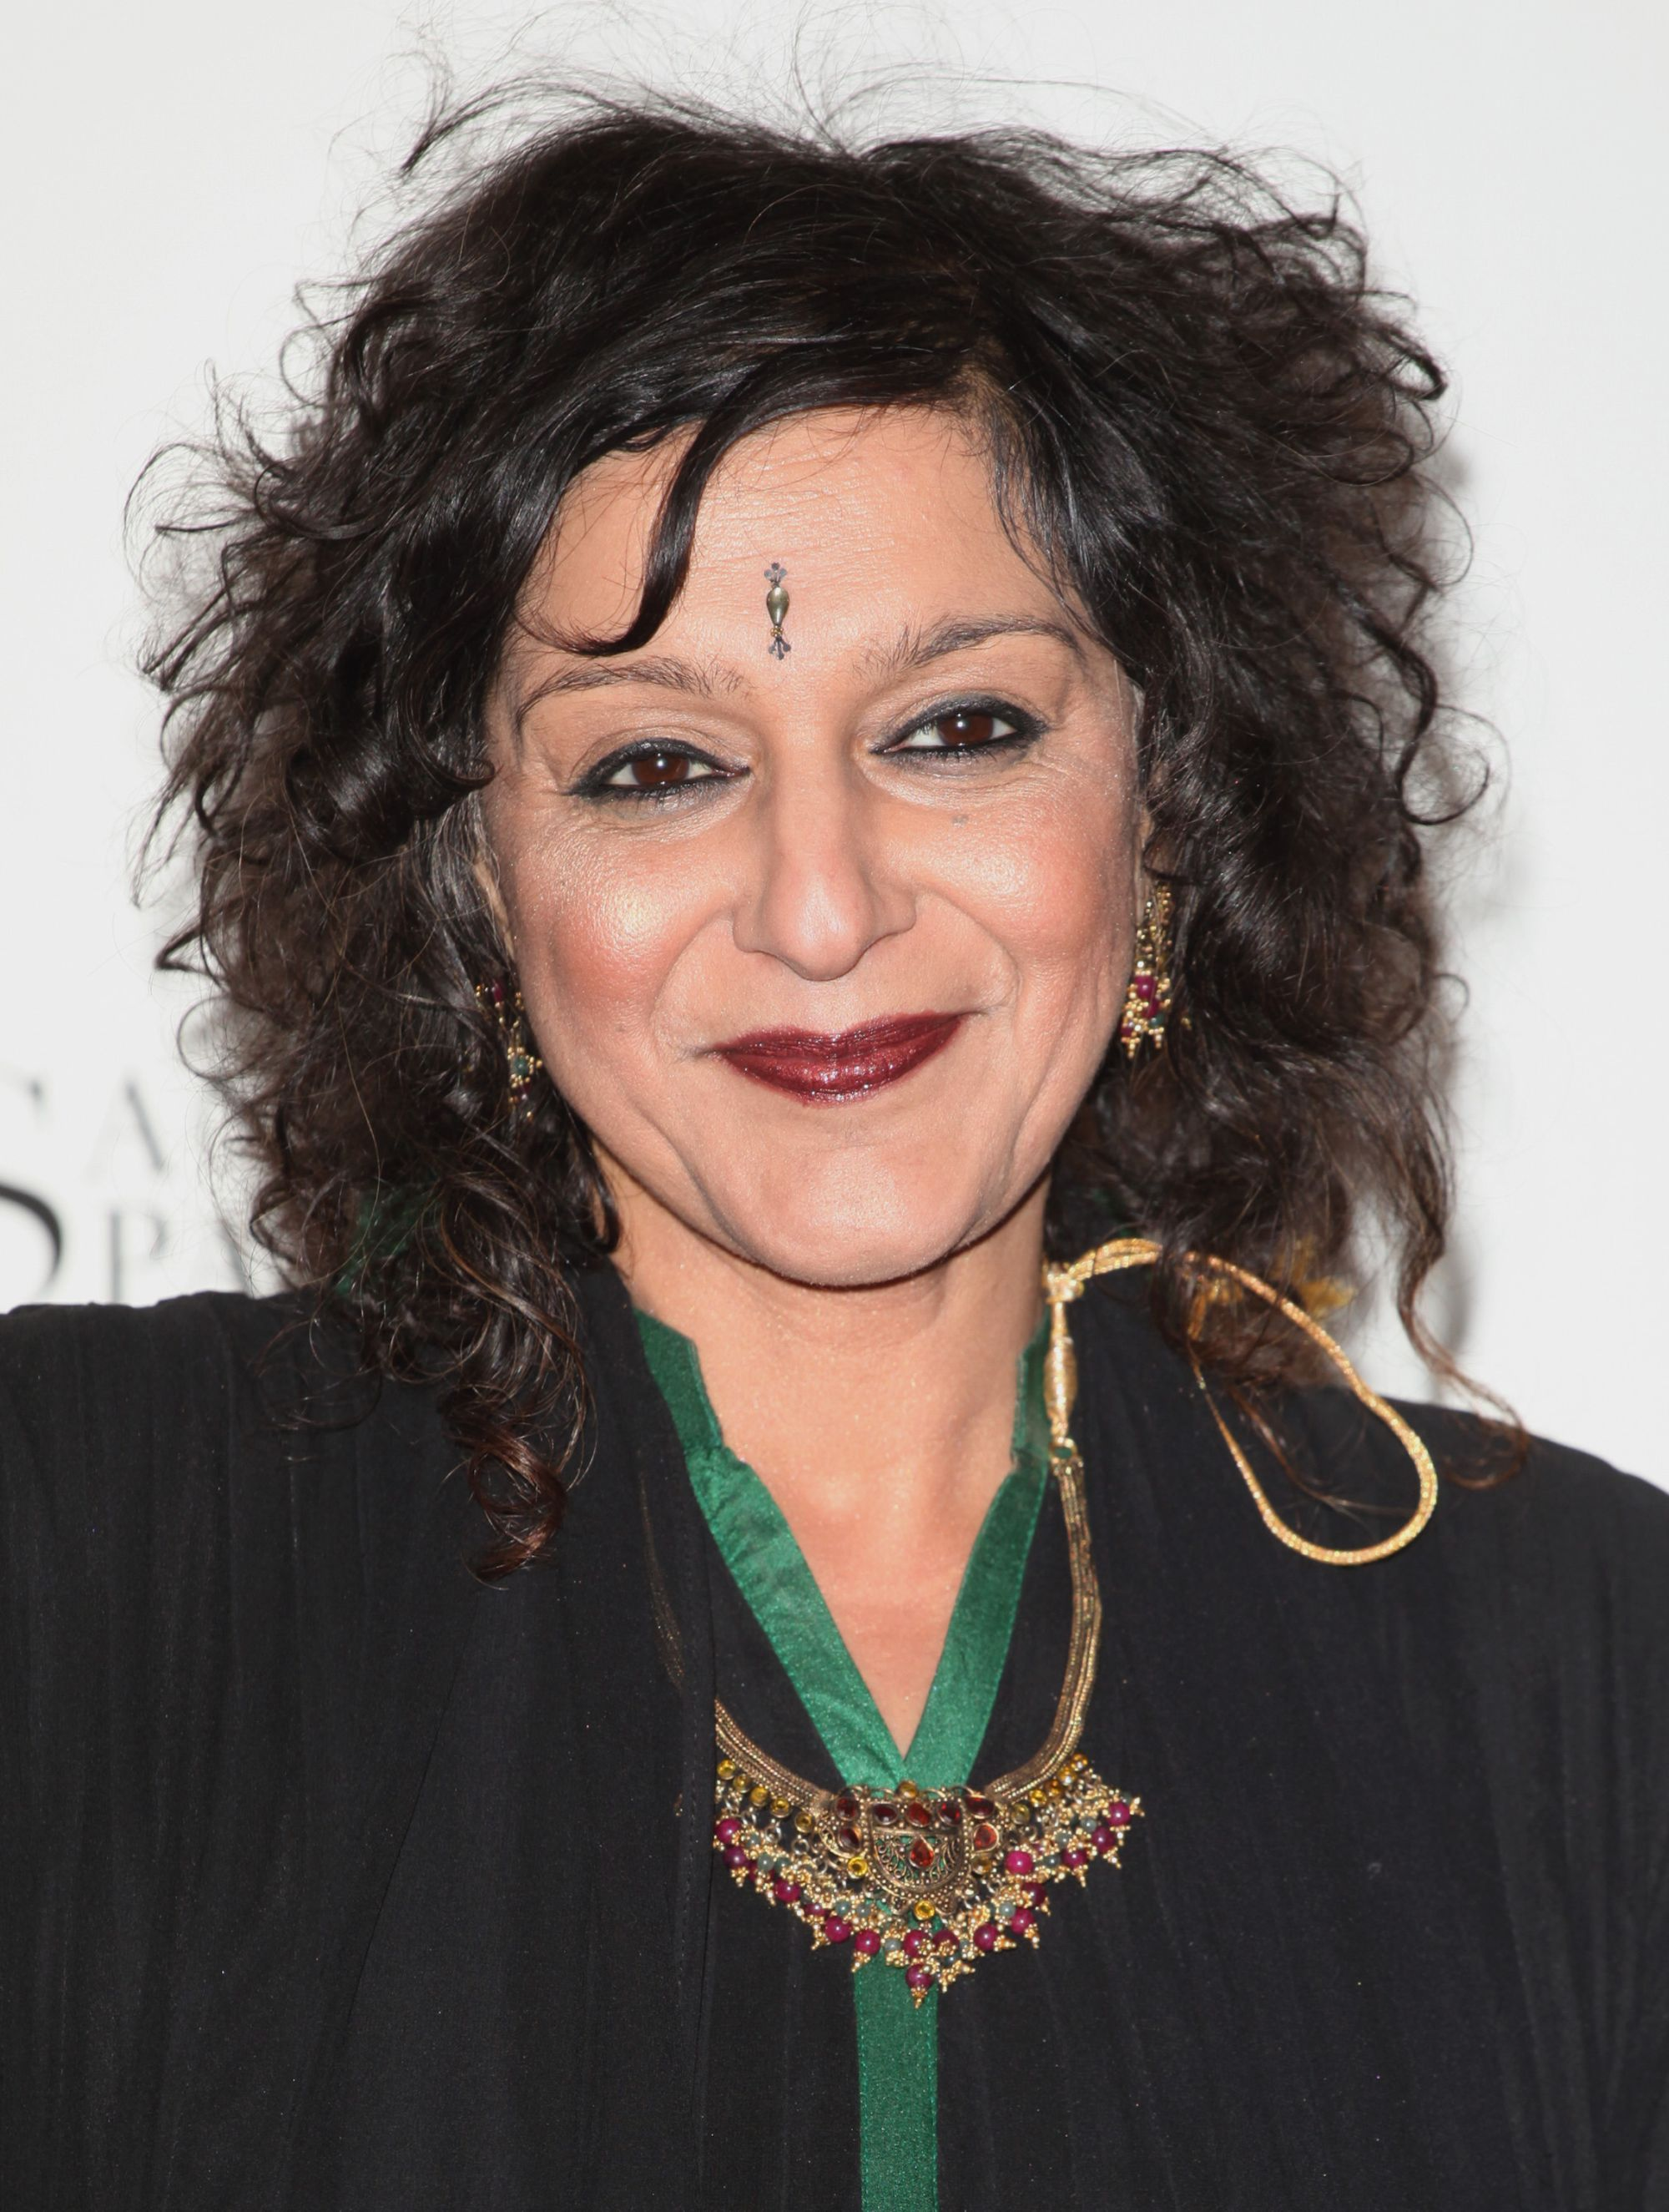 meera syal instagrammeera syal instagram, meera syal, meera syal the house of hidden mothers, meera syal doctor who, meera syal imdb, meera syal books, meera syal national theatre, meera syal twitter, meera syal anita and me, meera syal broadchurch, meera syal agent, meera syal daughter, meera syal husband, meera syal play, meera syal net worth, meera syal theatre, meera syal novel, meera syal feet, meera syal weight loss, meera syal biography